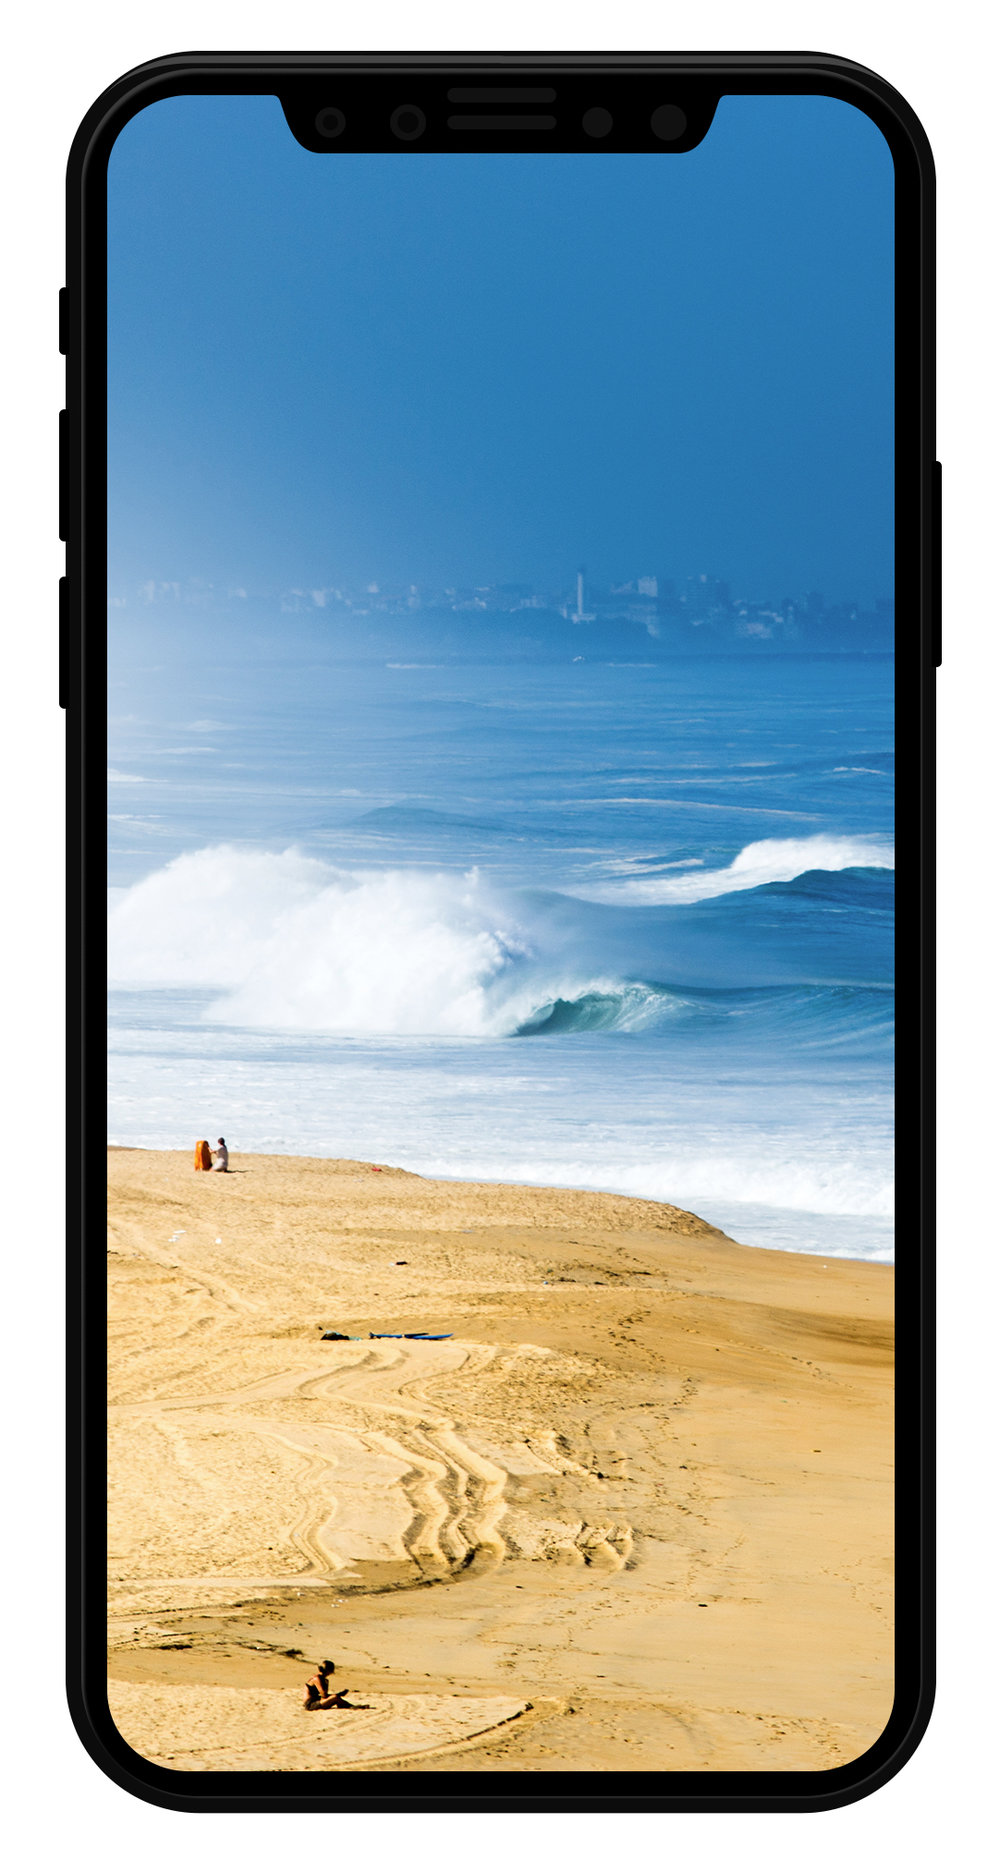 iphone-8-mockup-tyfydownloadable.jpg